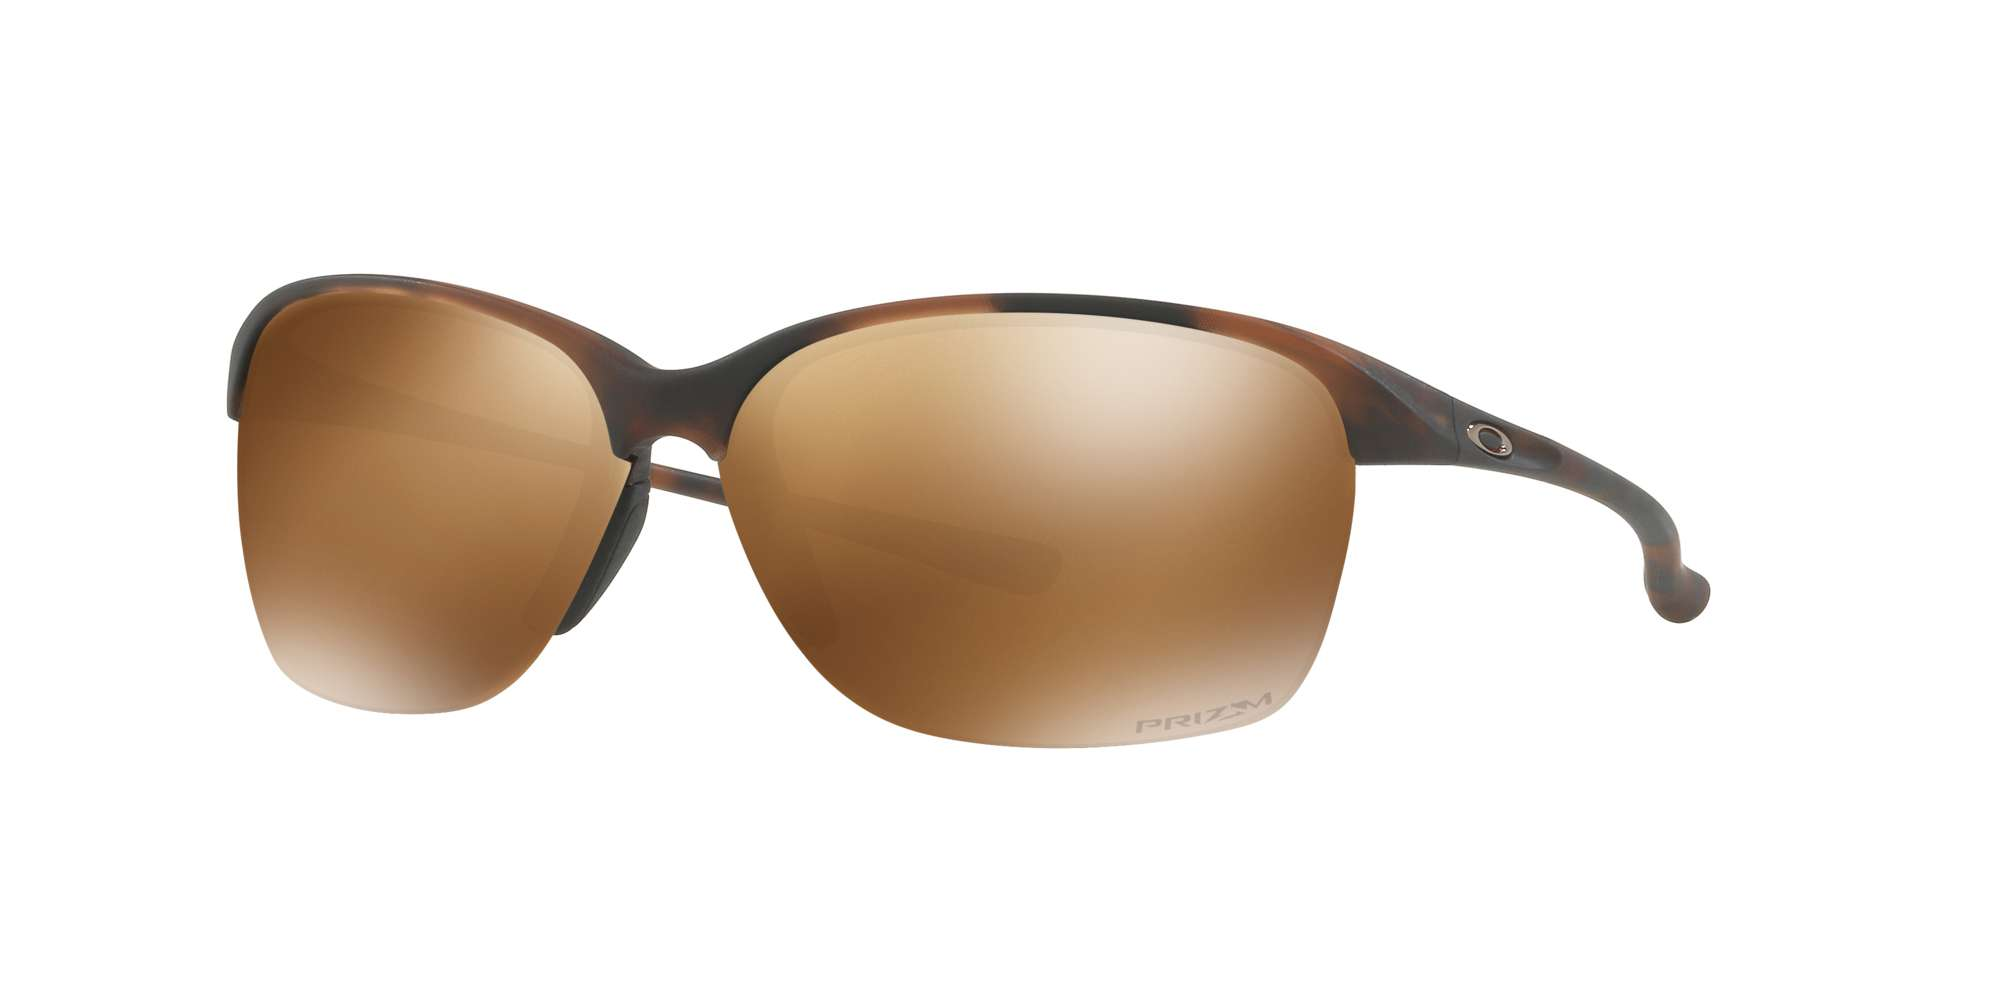 MATTE BROWN TORTOISE / PRIZM TUNGSTEN POLARIZED lenses